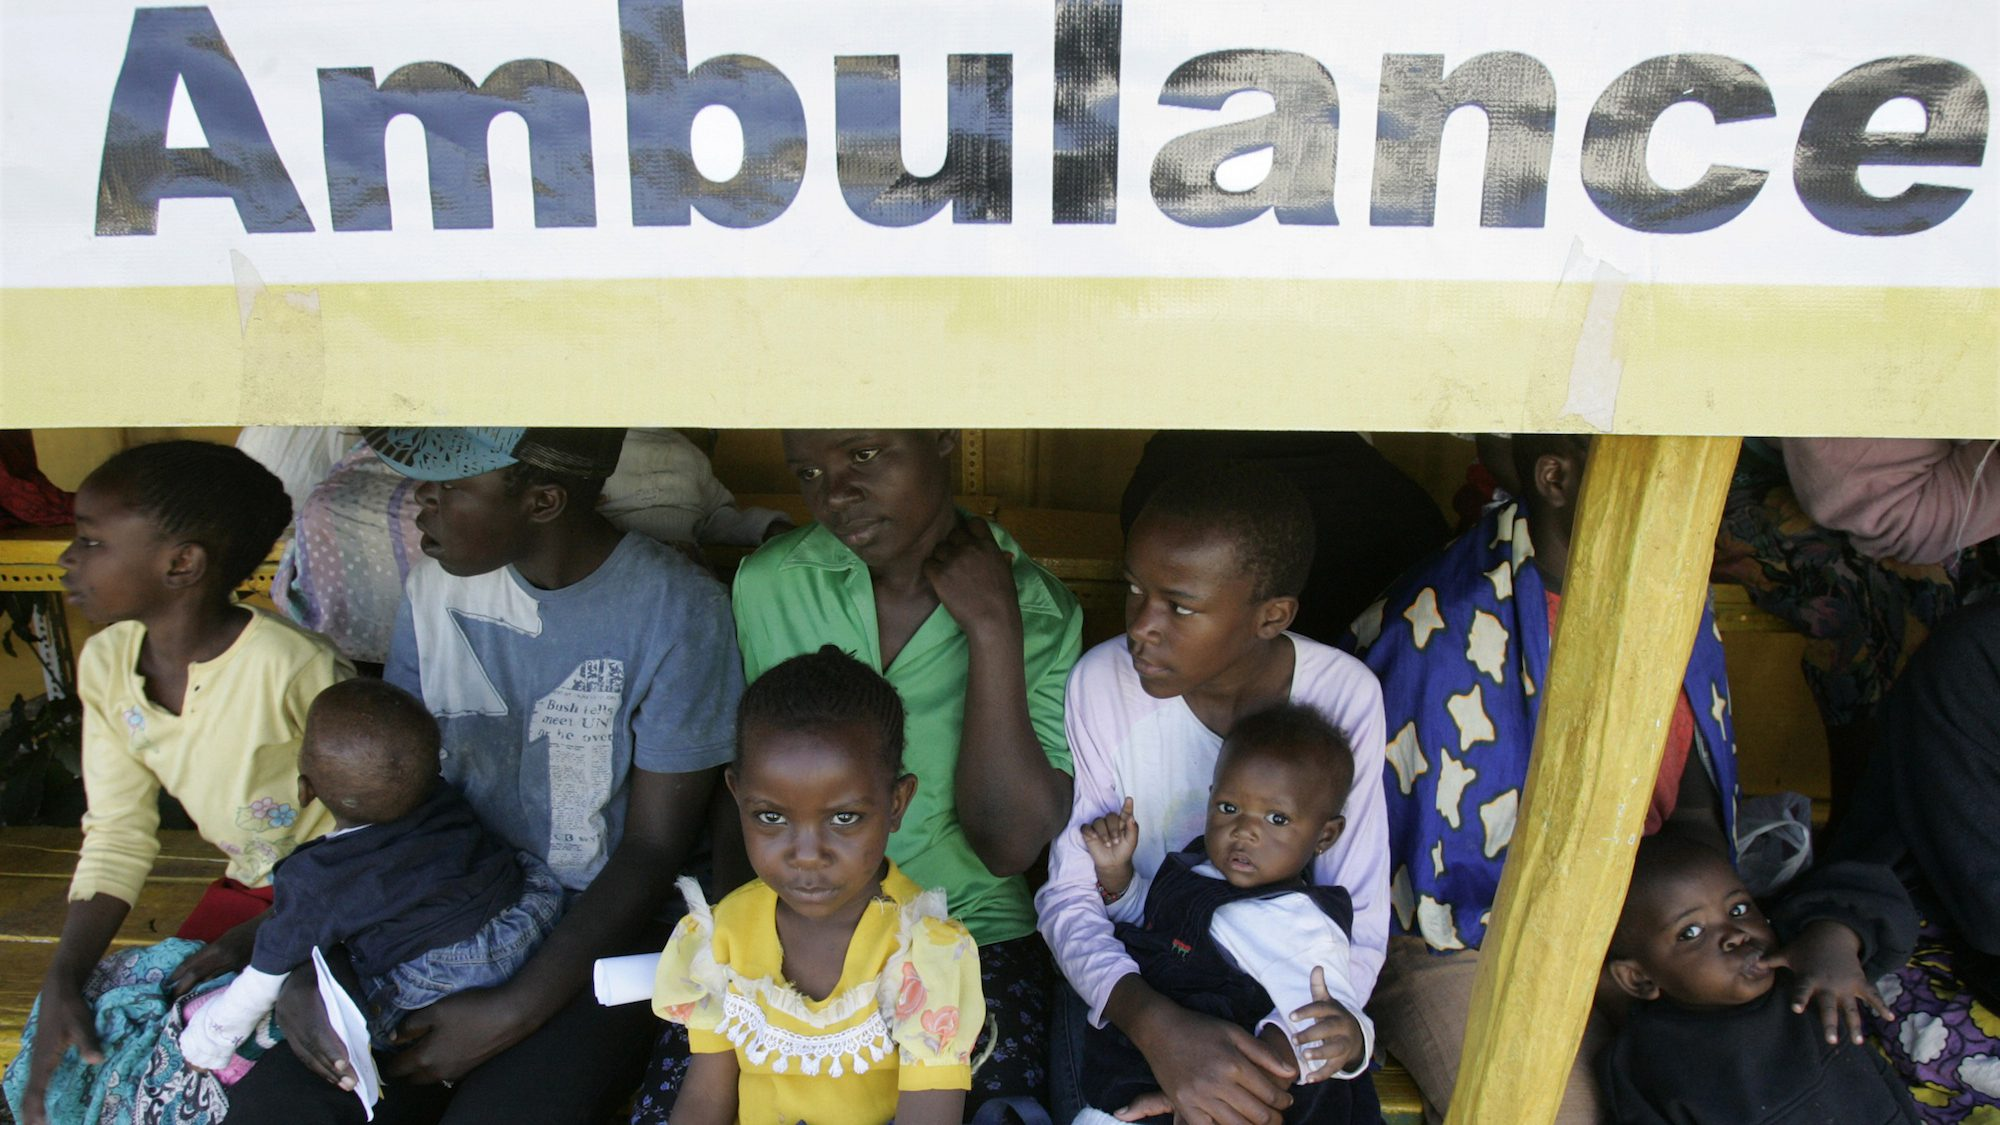 Displaced people wait in a line to be seen by a doctor at a centre run by St. Johns Ambulance at the Nairobi Show Grounds